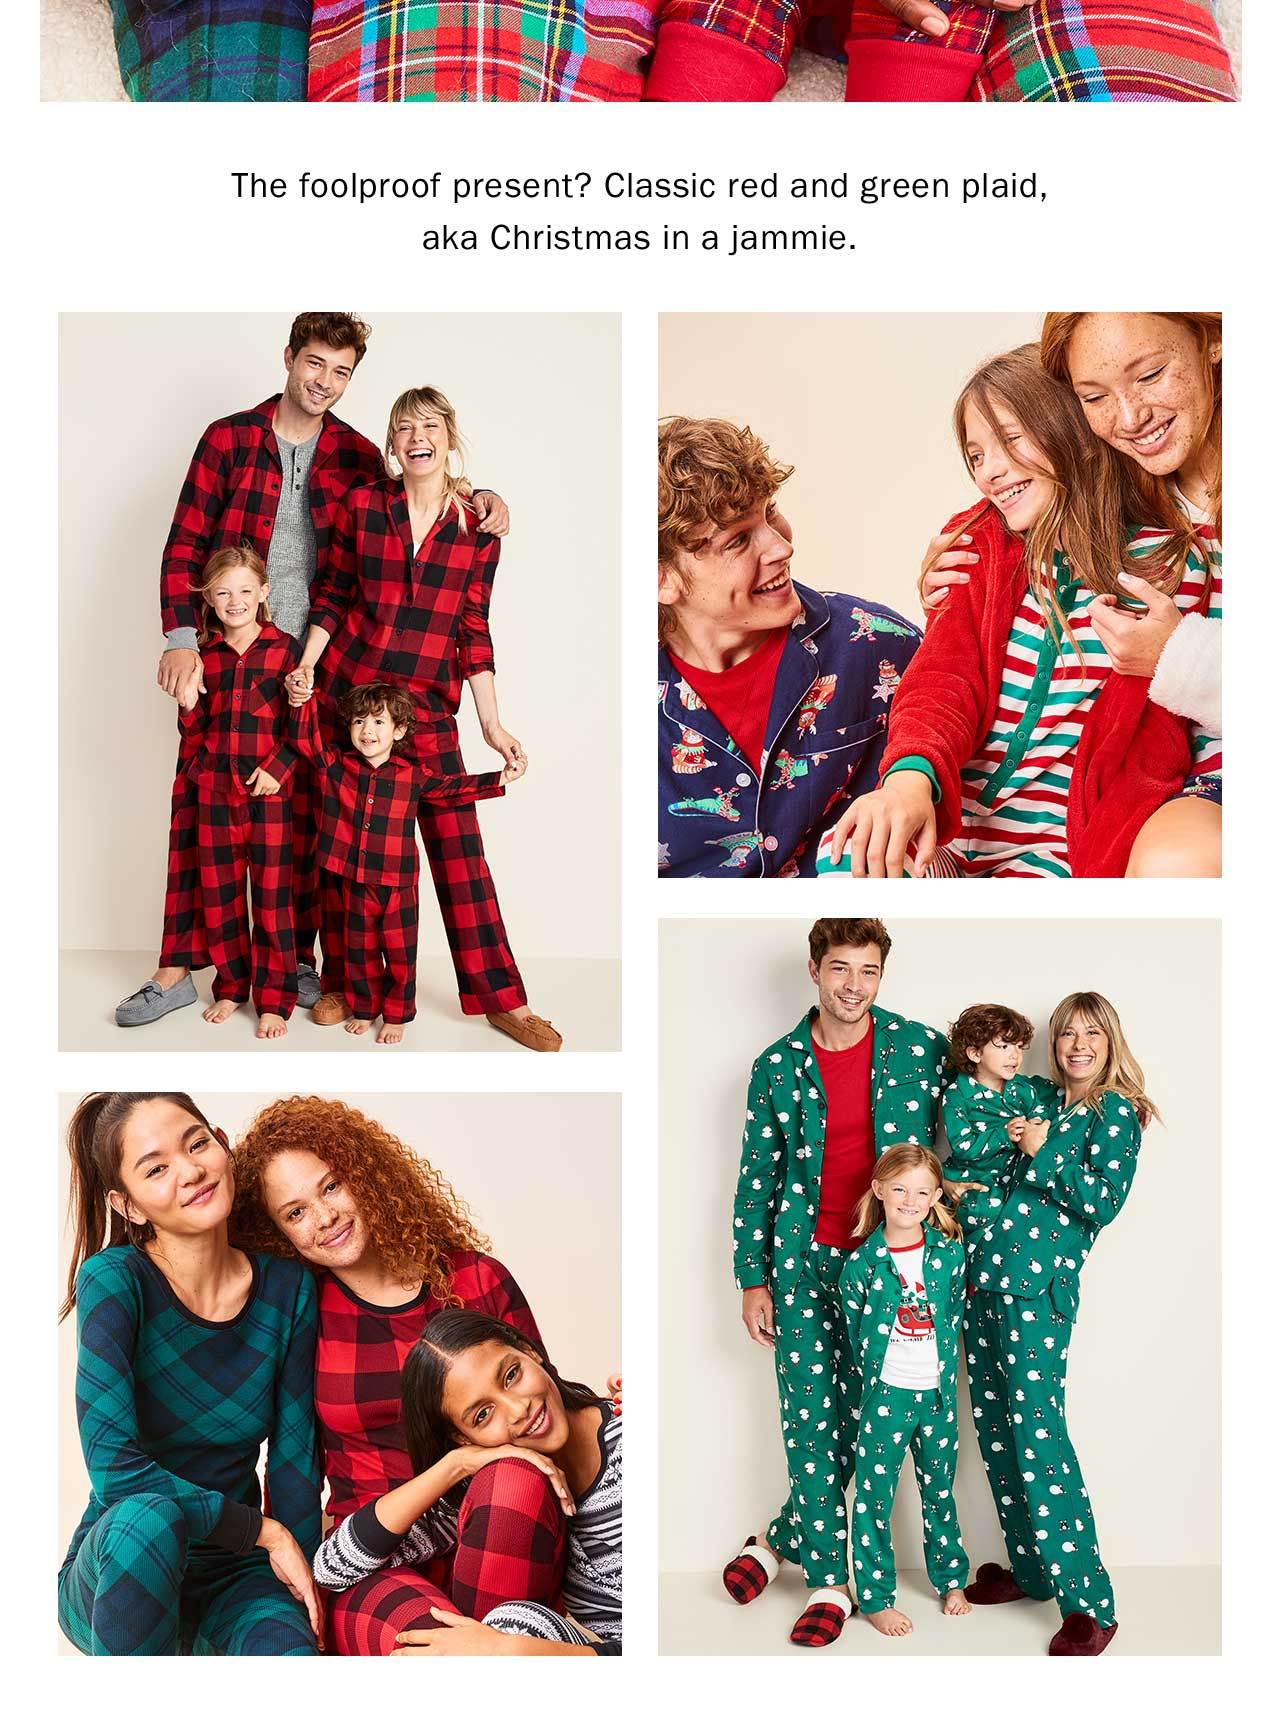 The foolproof present? Classic red and green plaid, aka Christmas in a jammie.